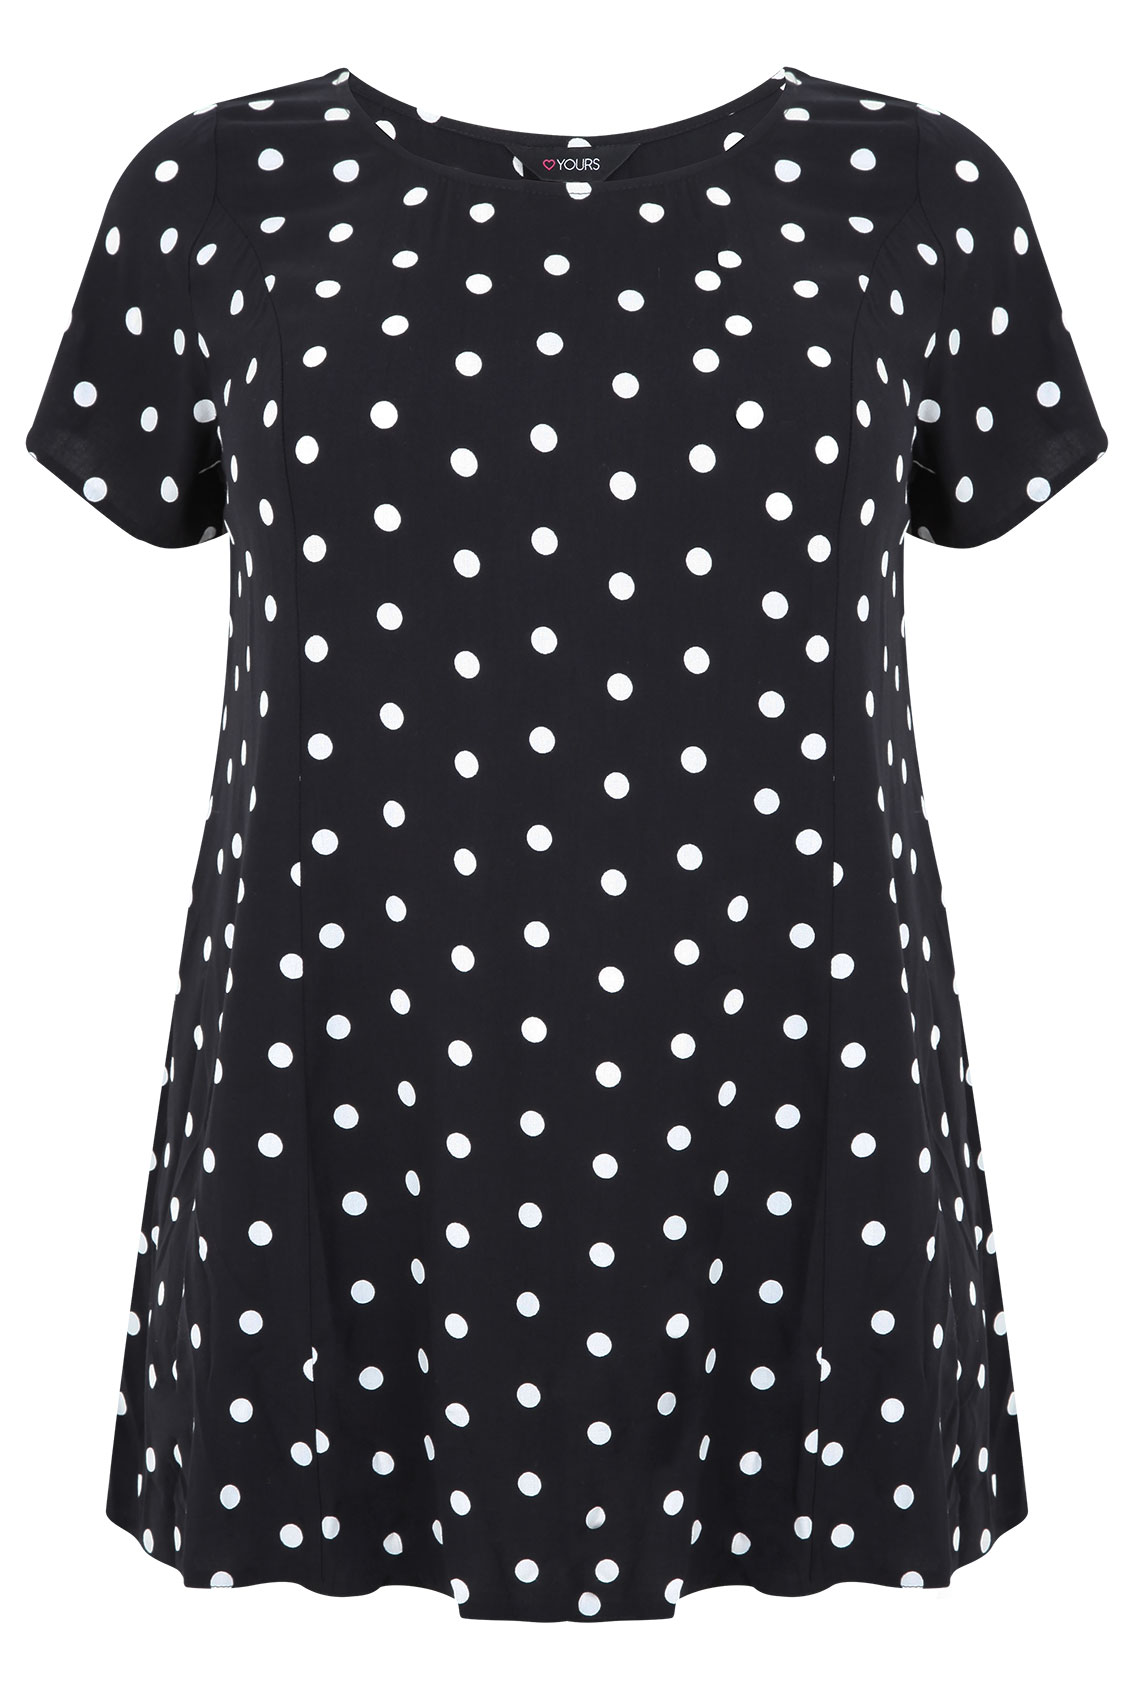 Find black and white polka dot tops at Macy's Macy's Presents: The Edit - A curated mix of fashion and inspiration Check It Out Free Shipping with $49 purchase + Free Store Pickup.